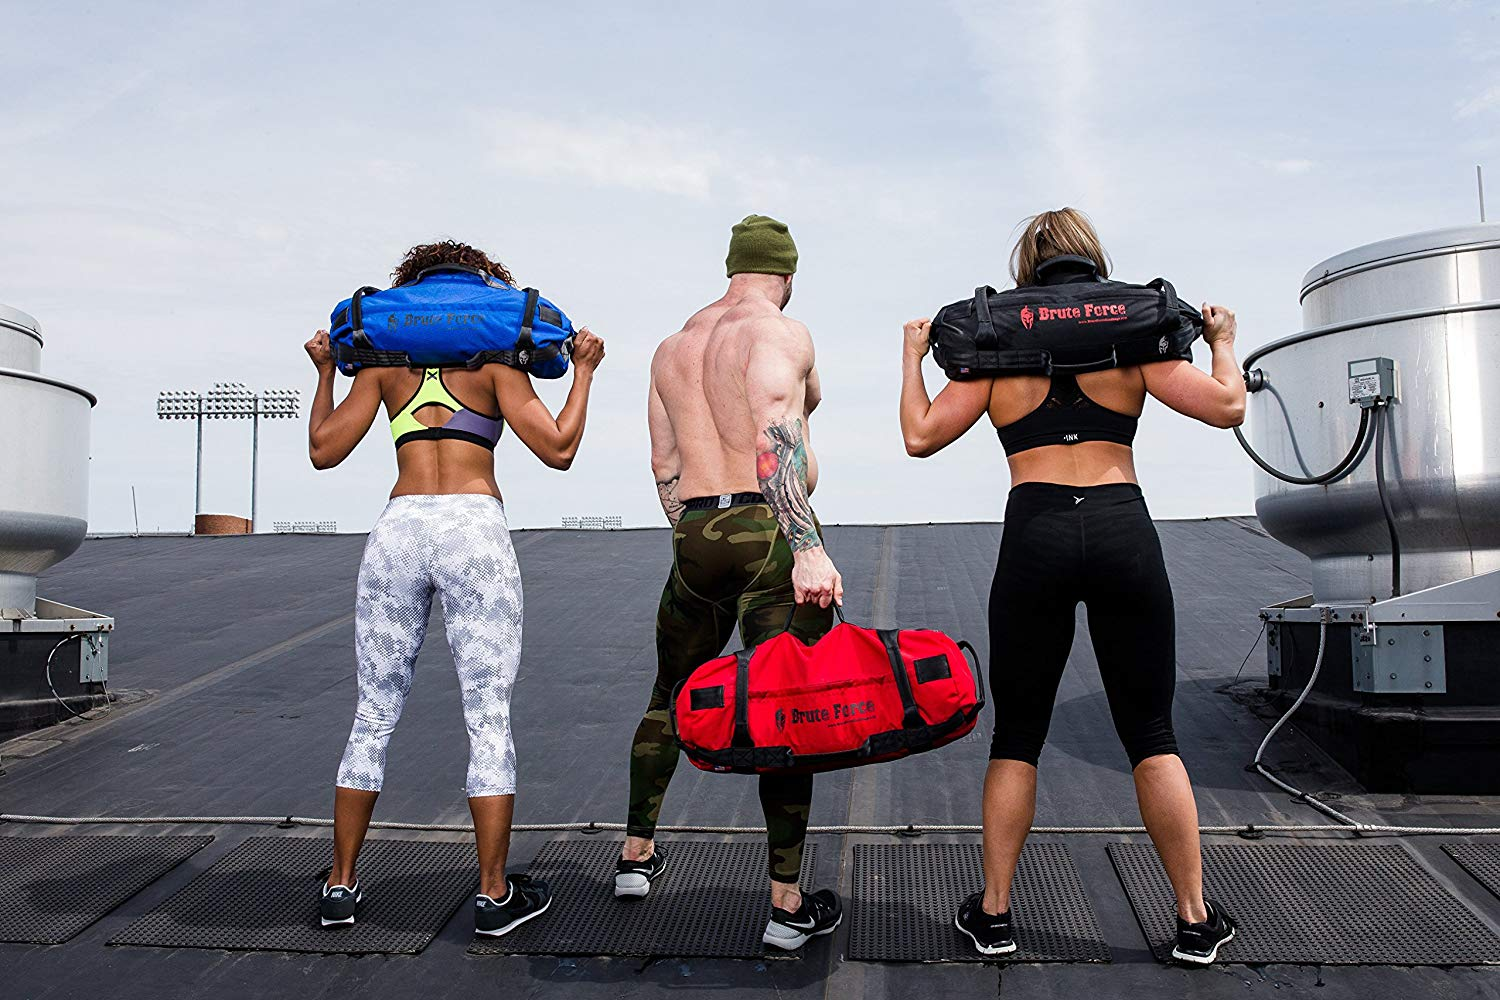 Brute Force Sandbags Workout Training Where To Buy Near Me For Sale